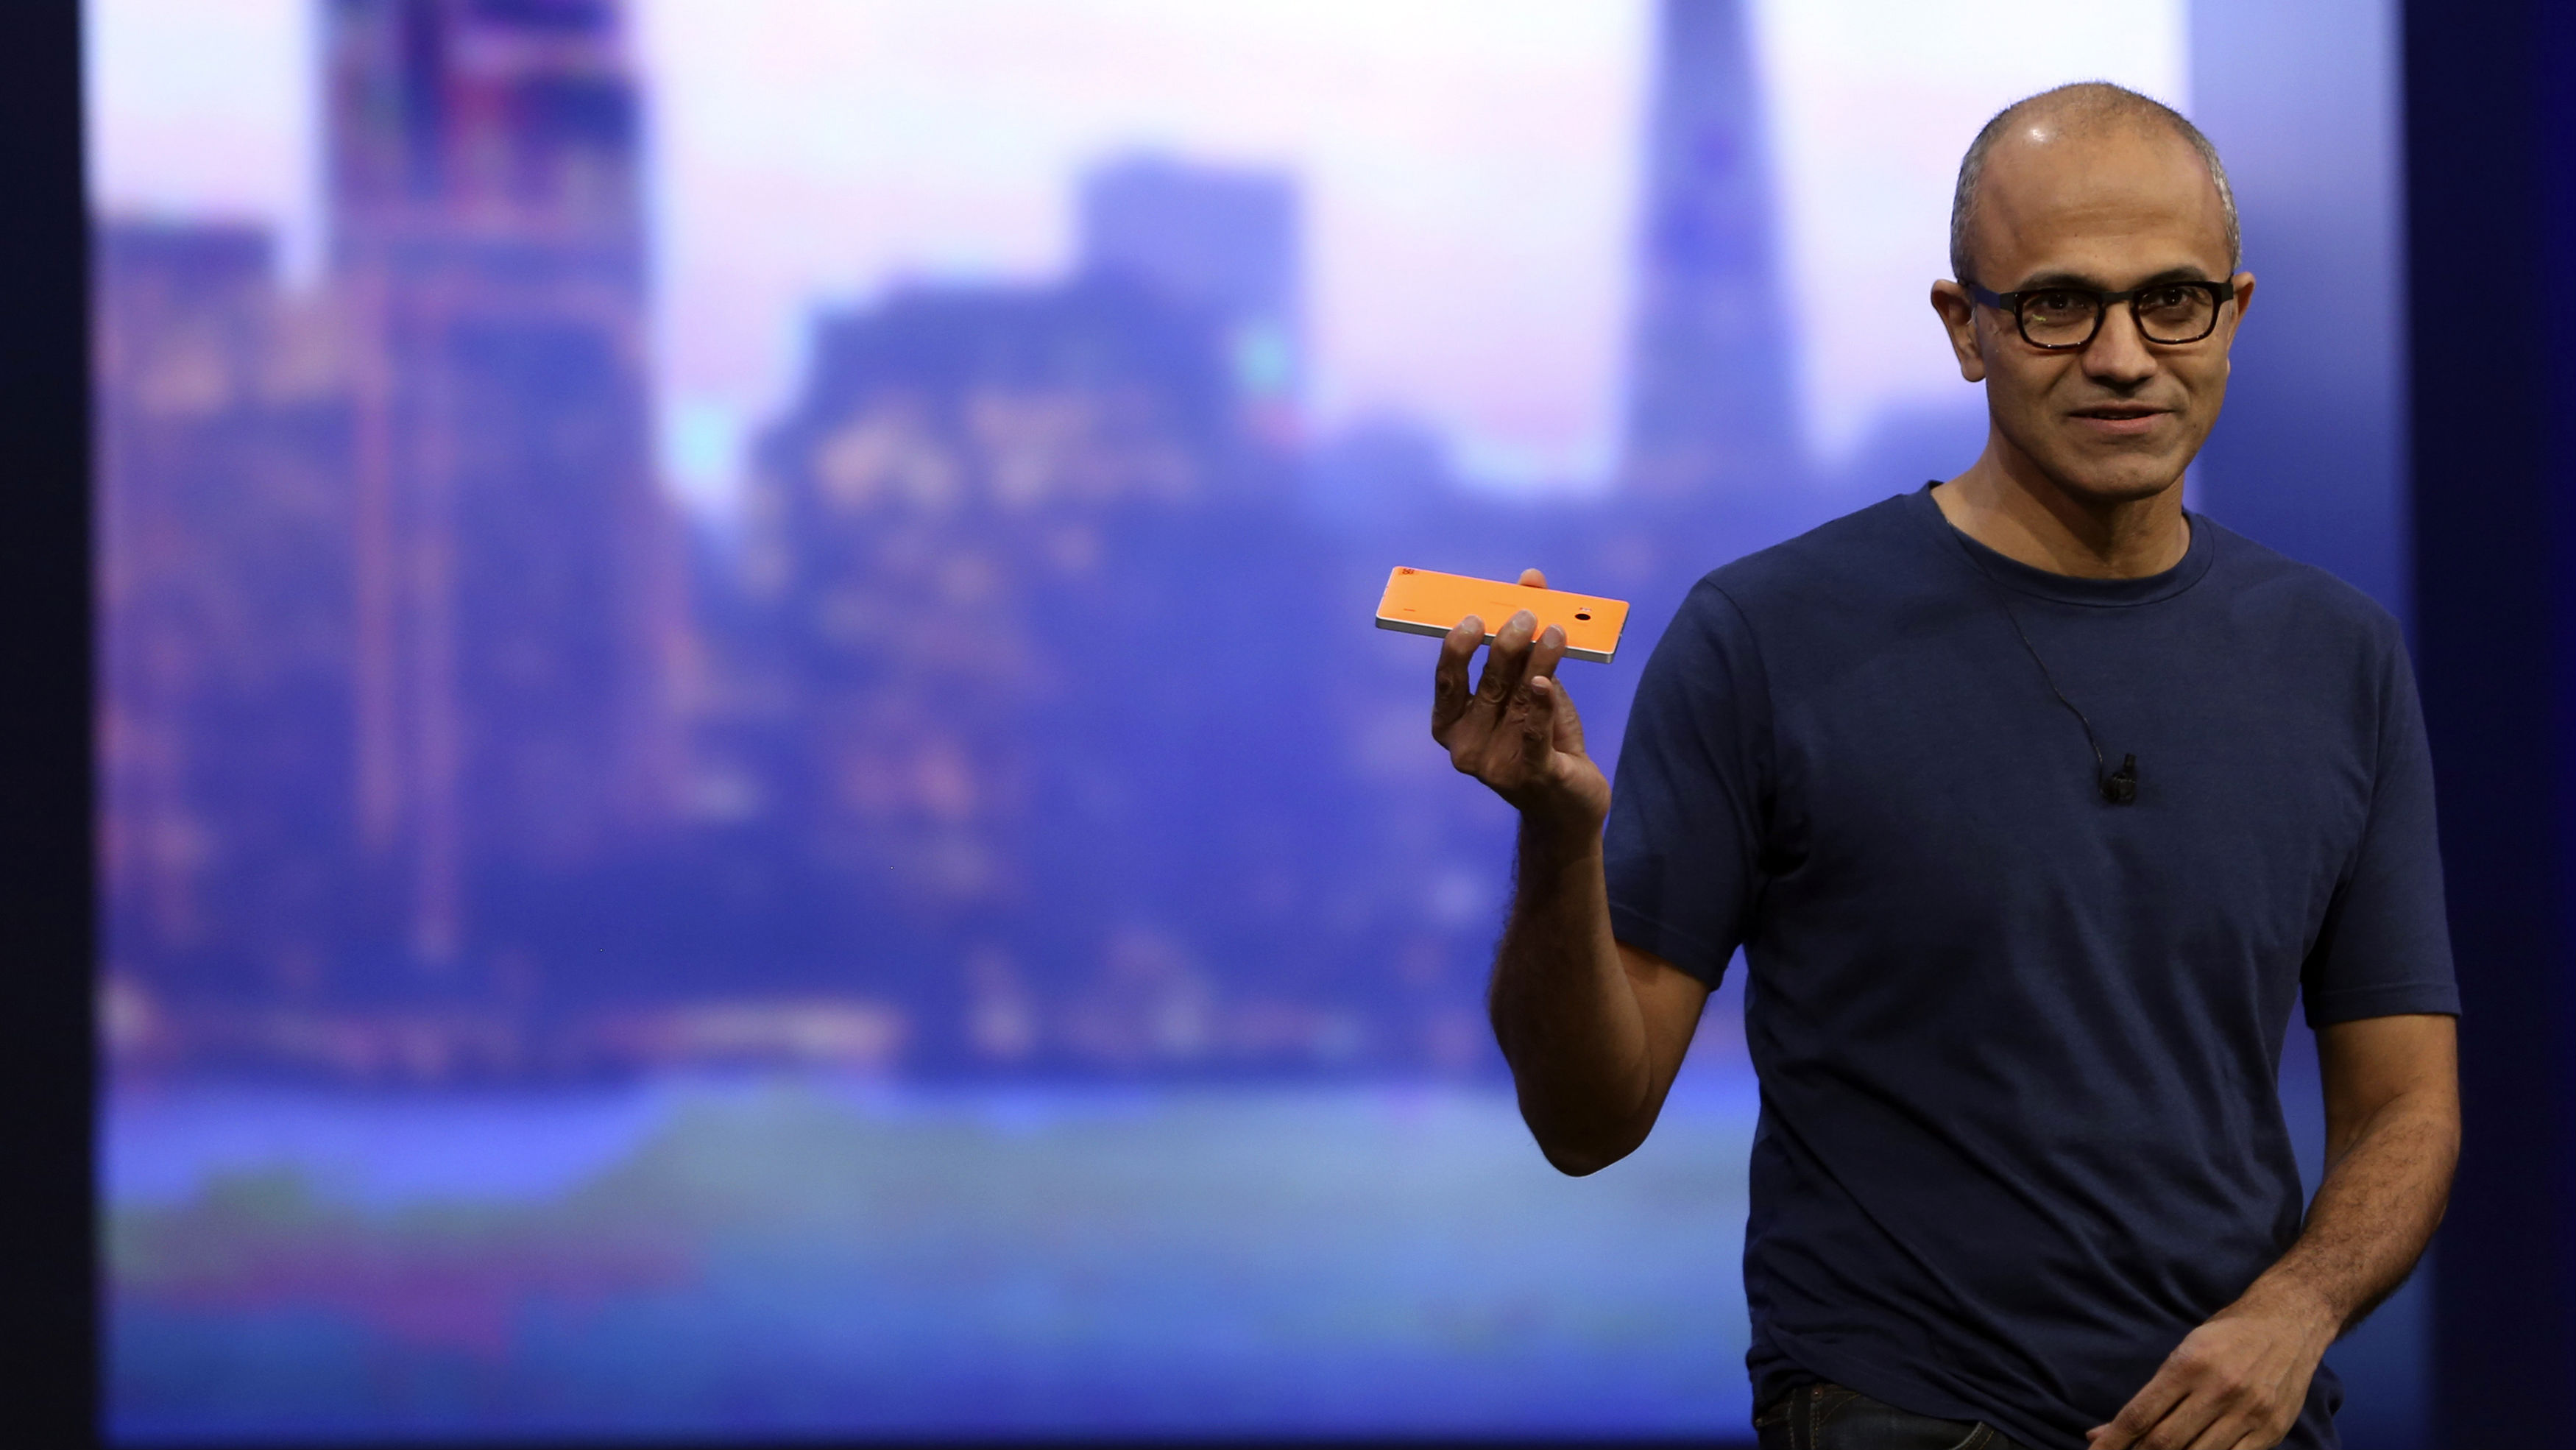 "Microsoft CEO Satya Nadella holds a Nokia Lumia mobile phone featuring Windows 8.1 operating system during his keynote address at the company's ""build"" conference in San Francisco, California April 2, 2014. REUTERS/Robert Galbraith"